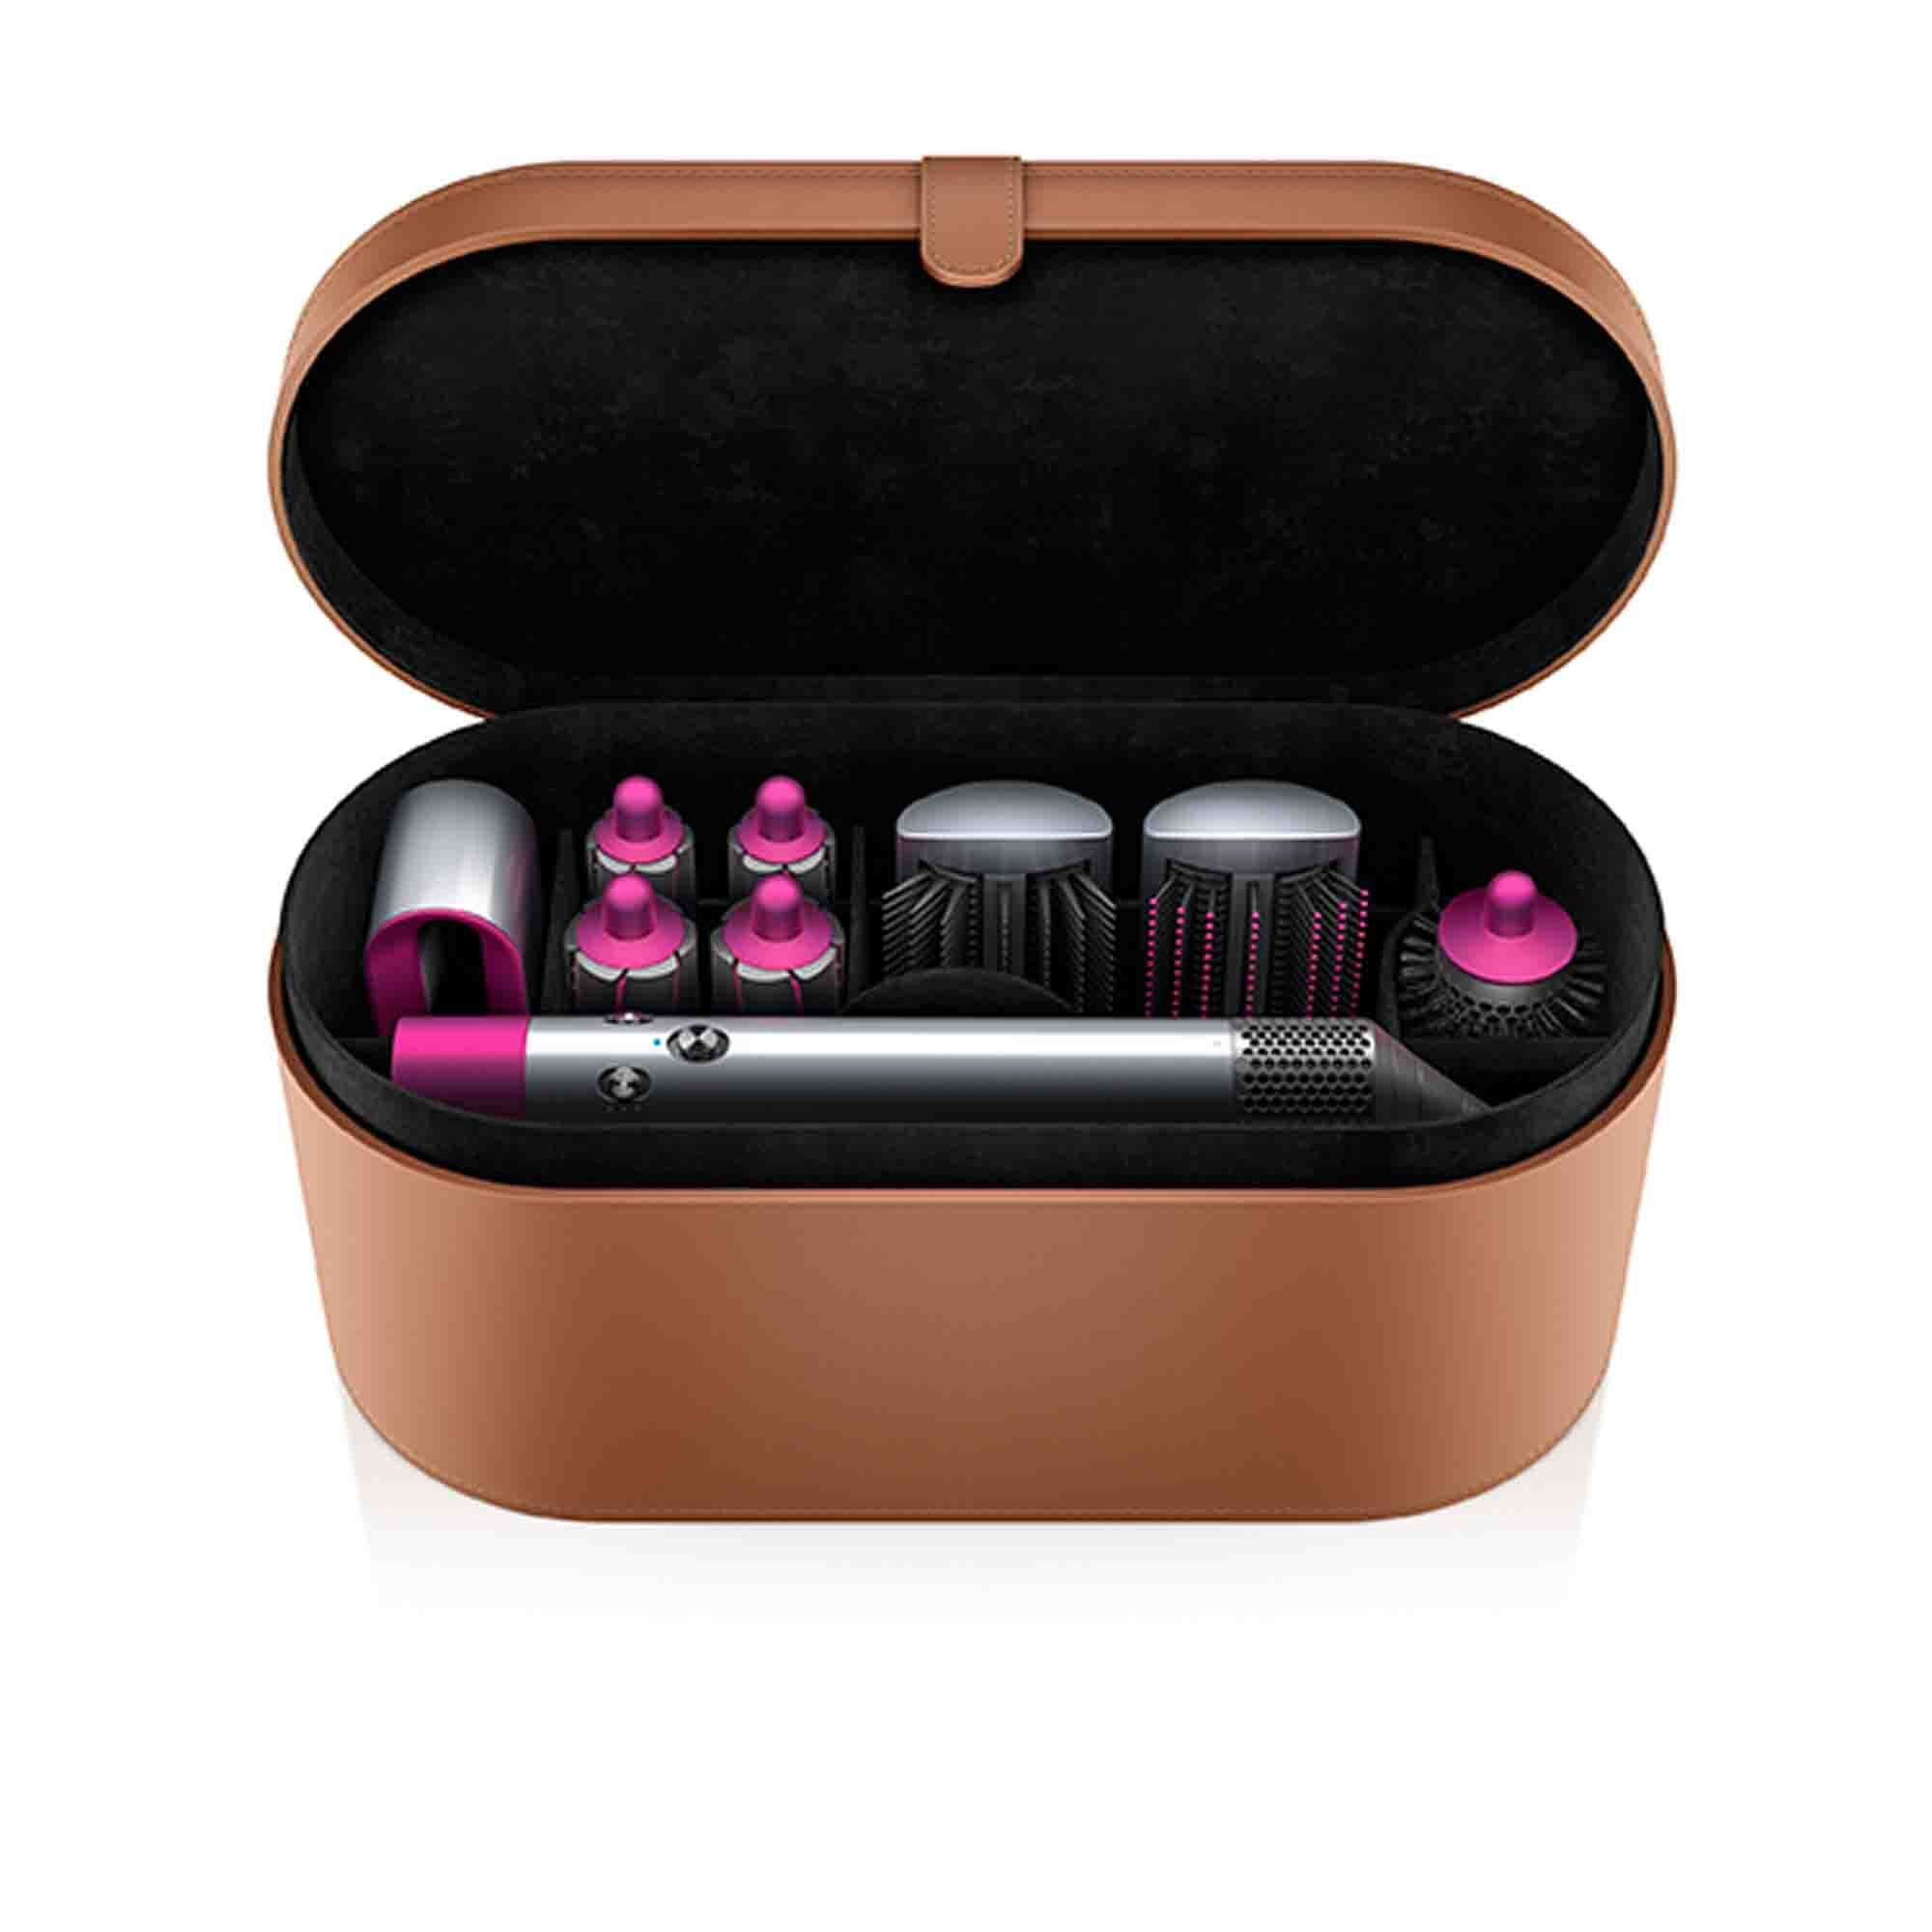 Image of Airwrap Styler completo per i capelli